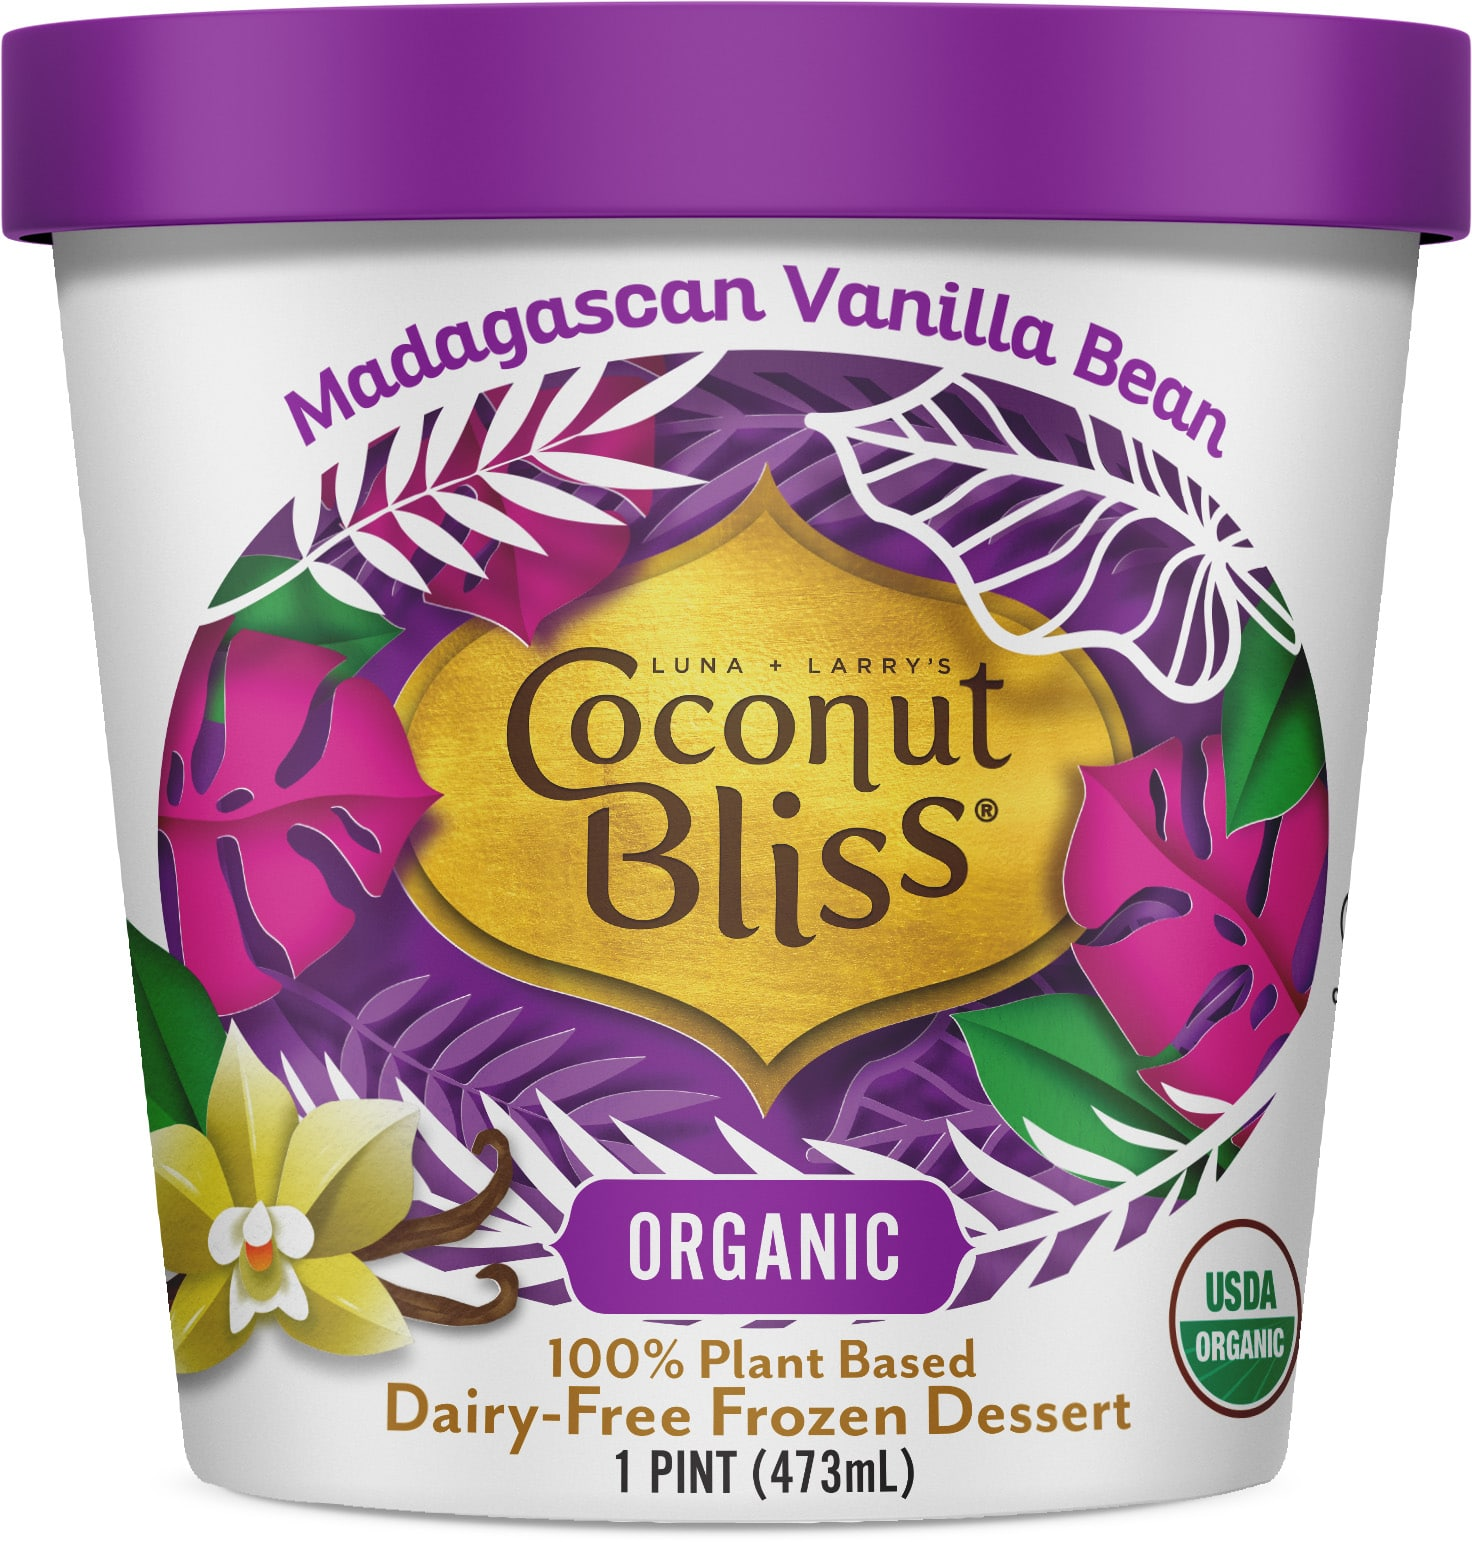 Coconut Bliss Announces Rebrand